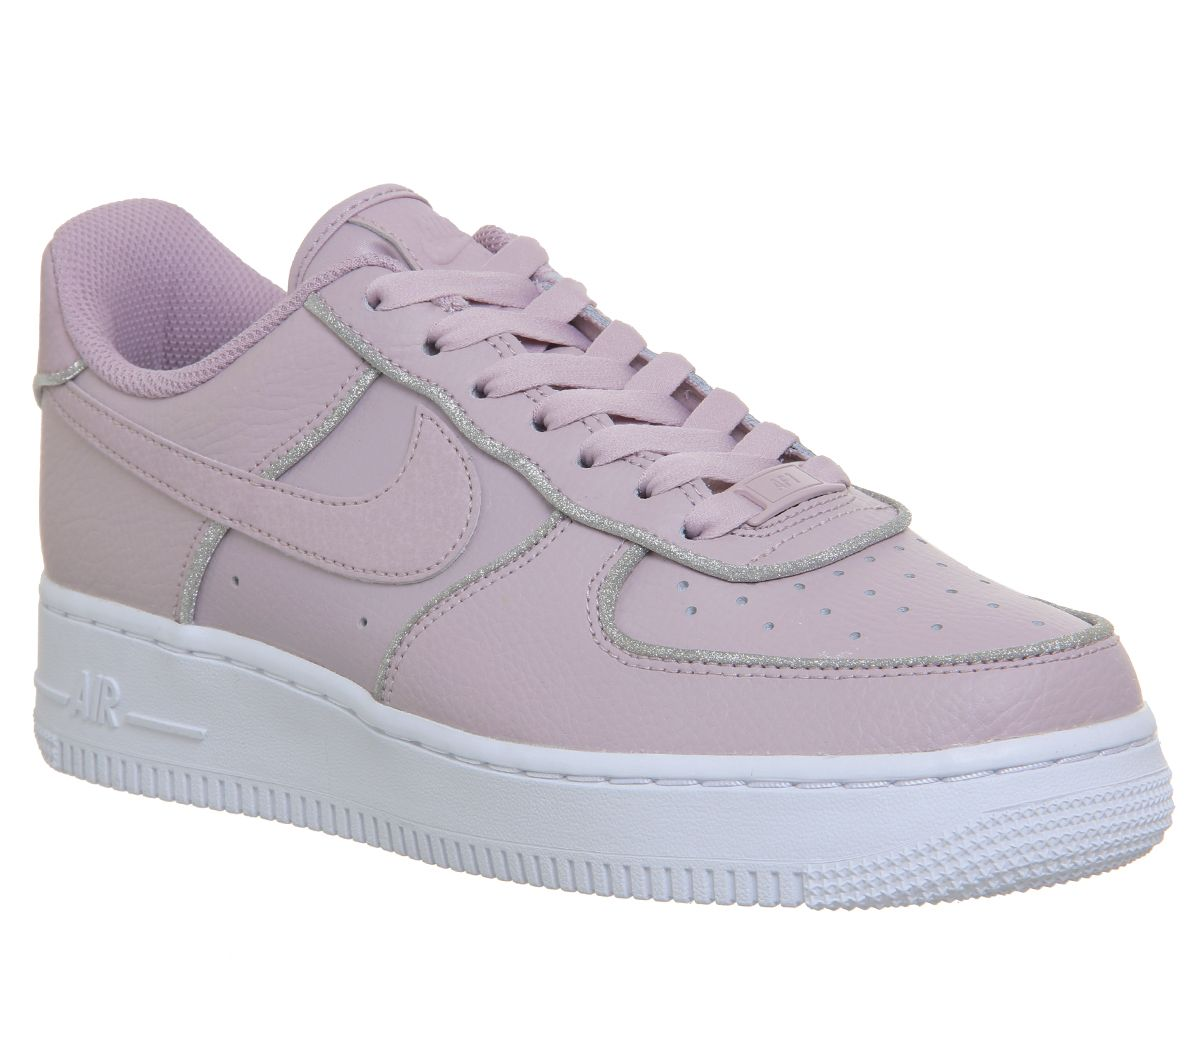 97f7e3f6e9 Nike Air Force 1 07 Trainers Particle Rose Glitter - Hers trainers